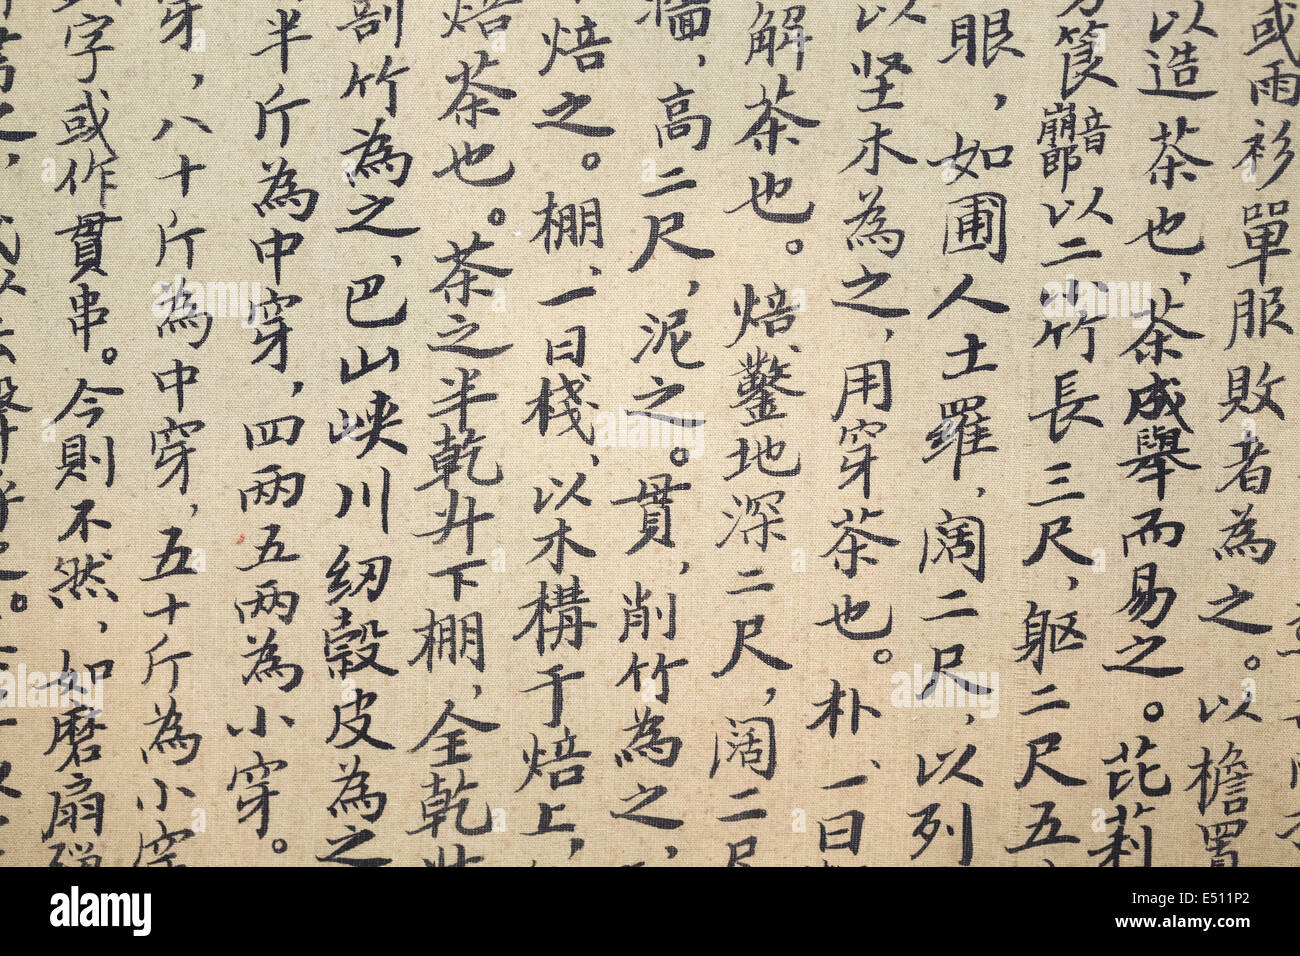 chinese calligraphy of tea scripture - Stock Image